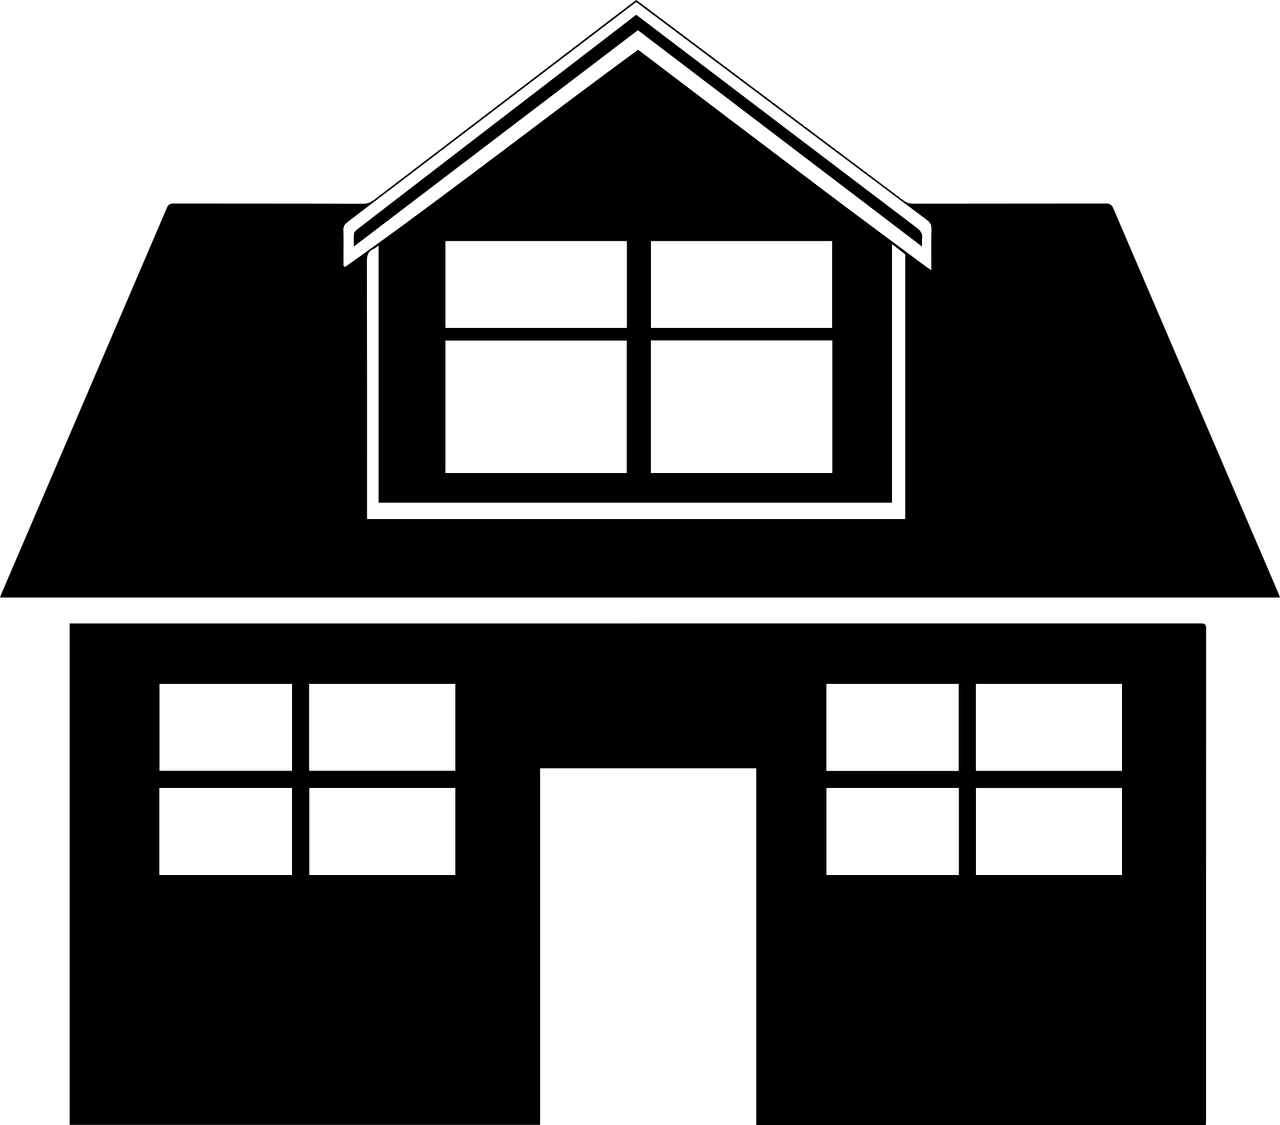 House of sticks clipart png stock Free Image on Pixabay - Black, Home, House, Icon, White | Pinterest ... png stock